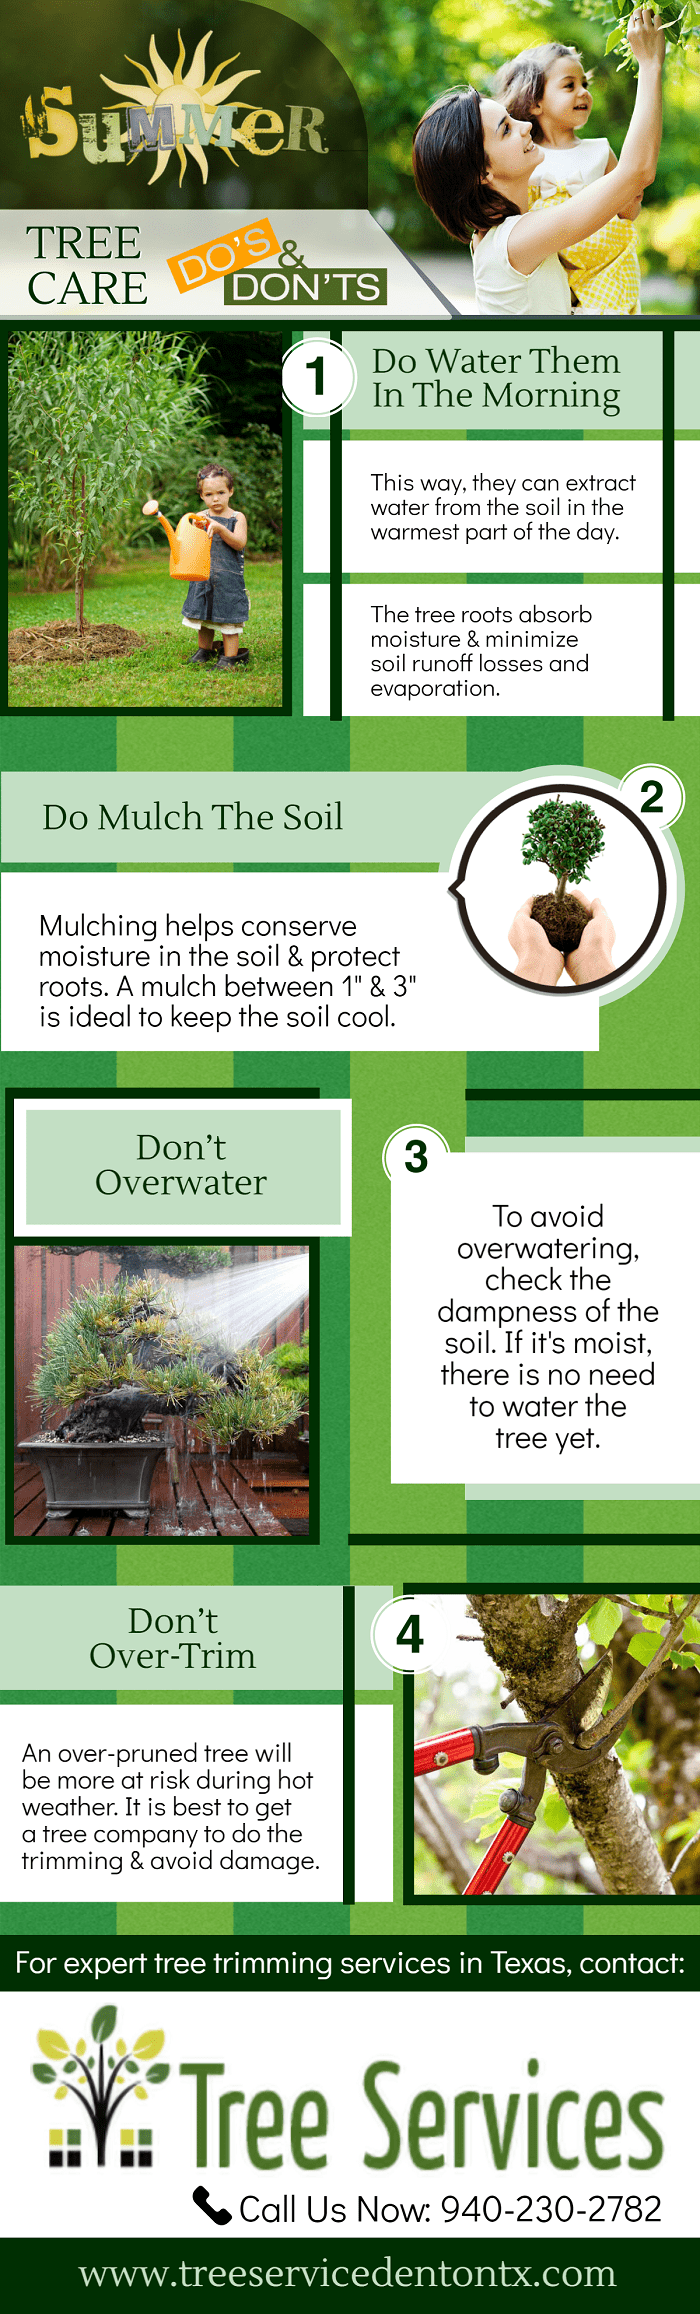 Summer - Tree Care Do's and Don'ts